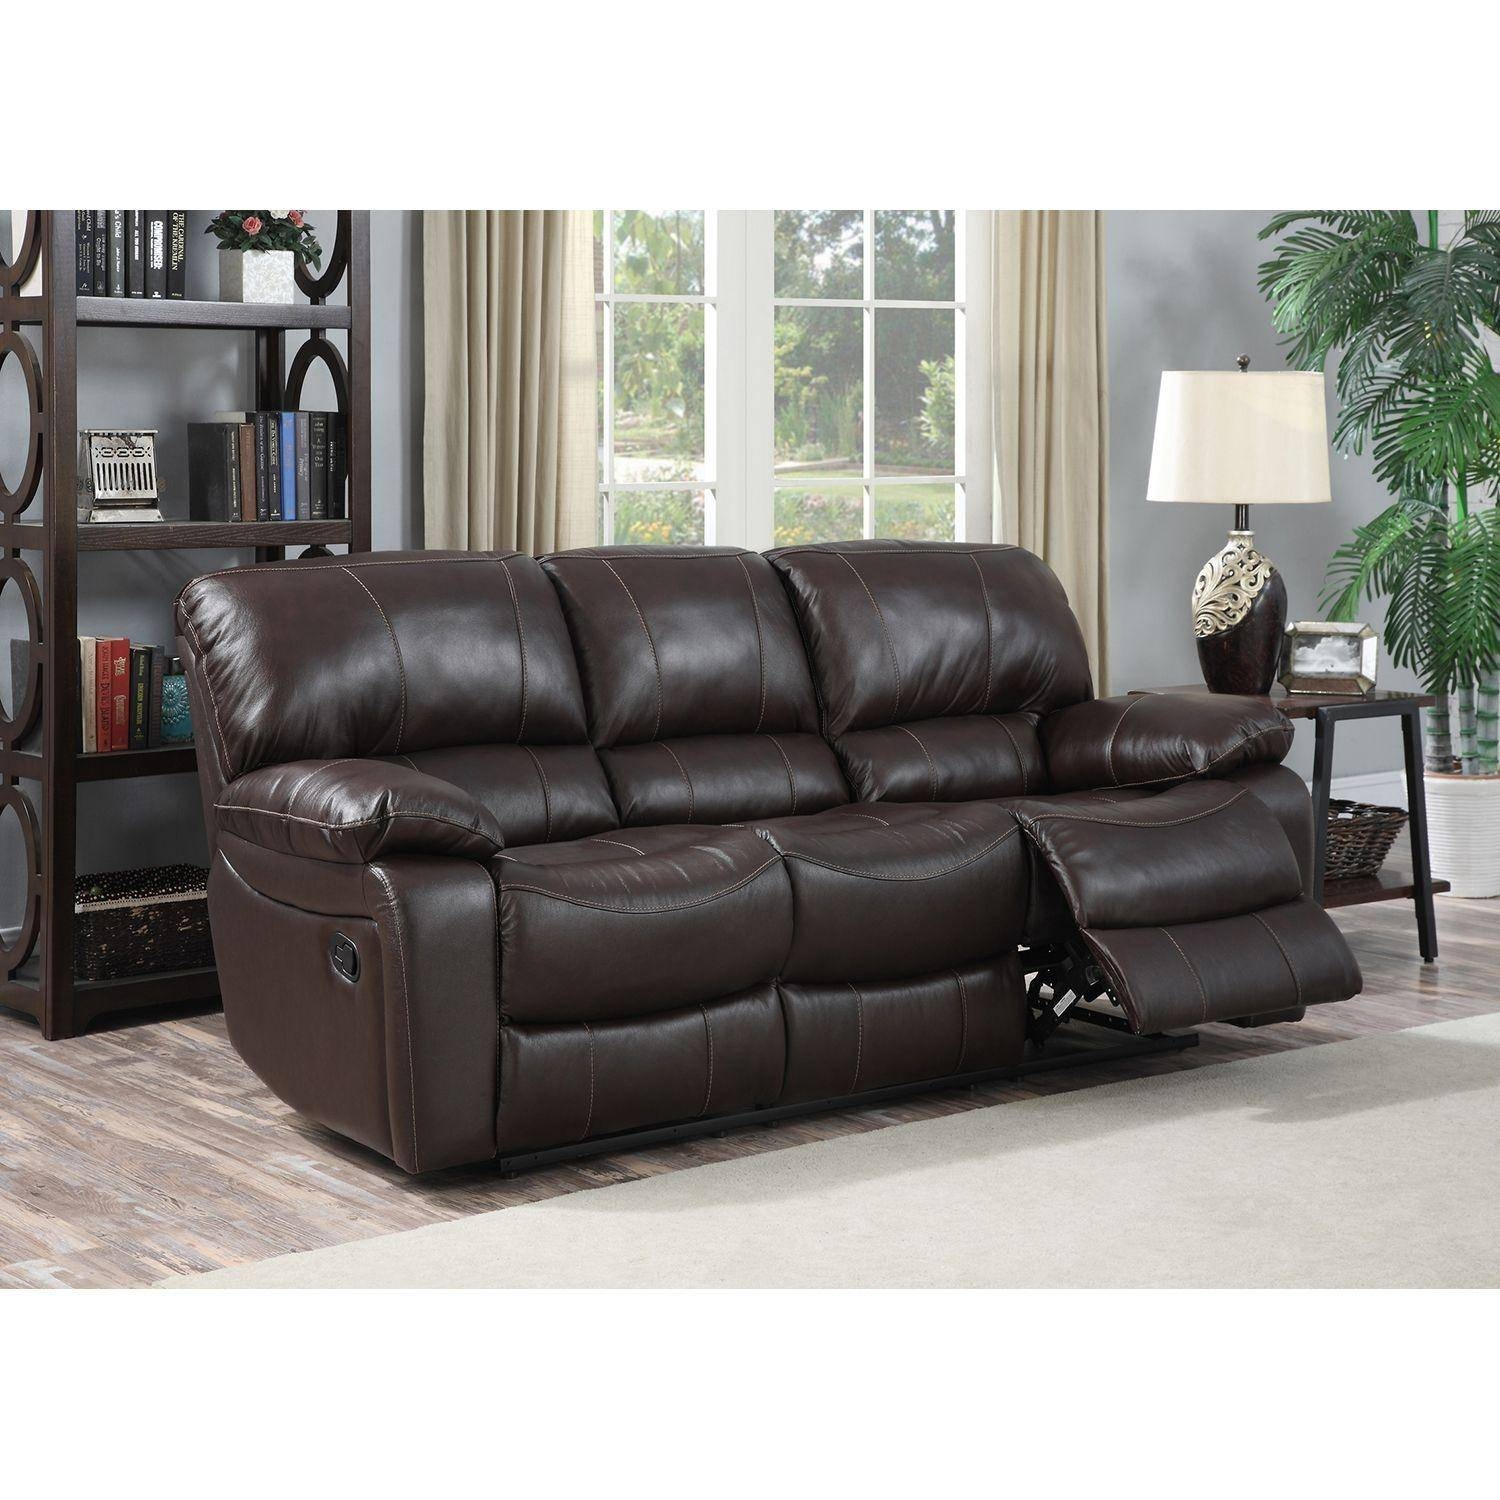 2017 Latest Berkline Recliner Sofas | Sofa Ideas pertaining to Berkline Recliner Sofas (Image 4 of 15)